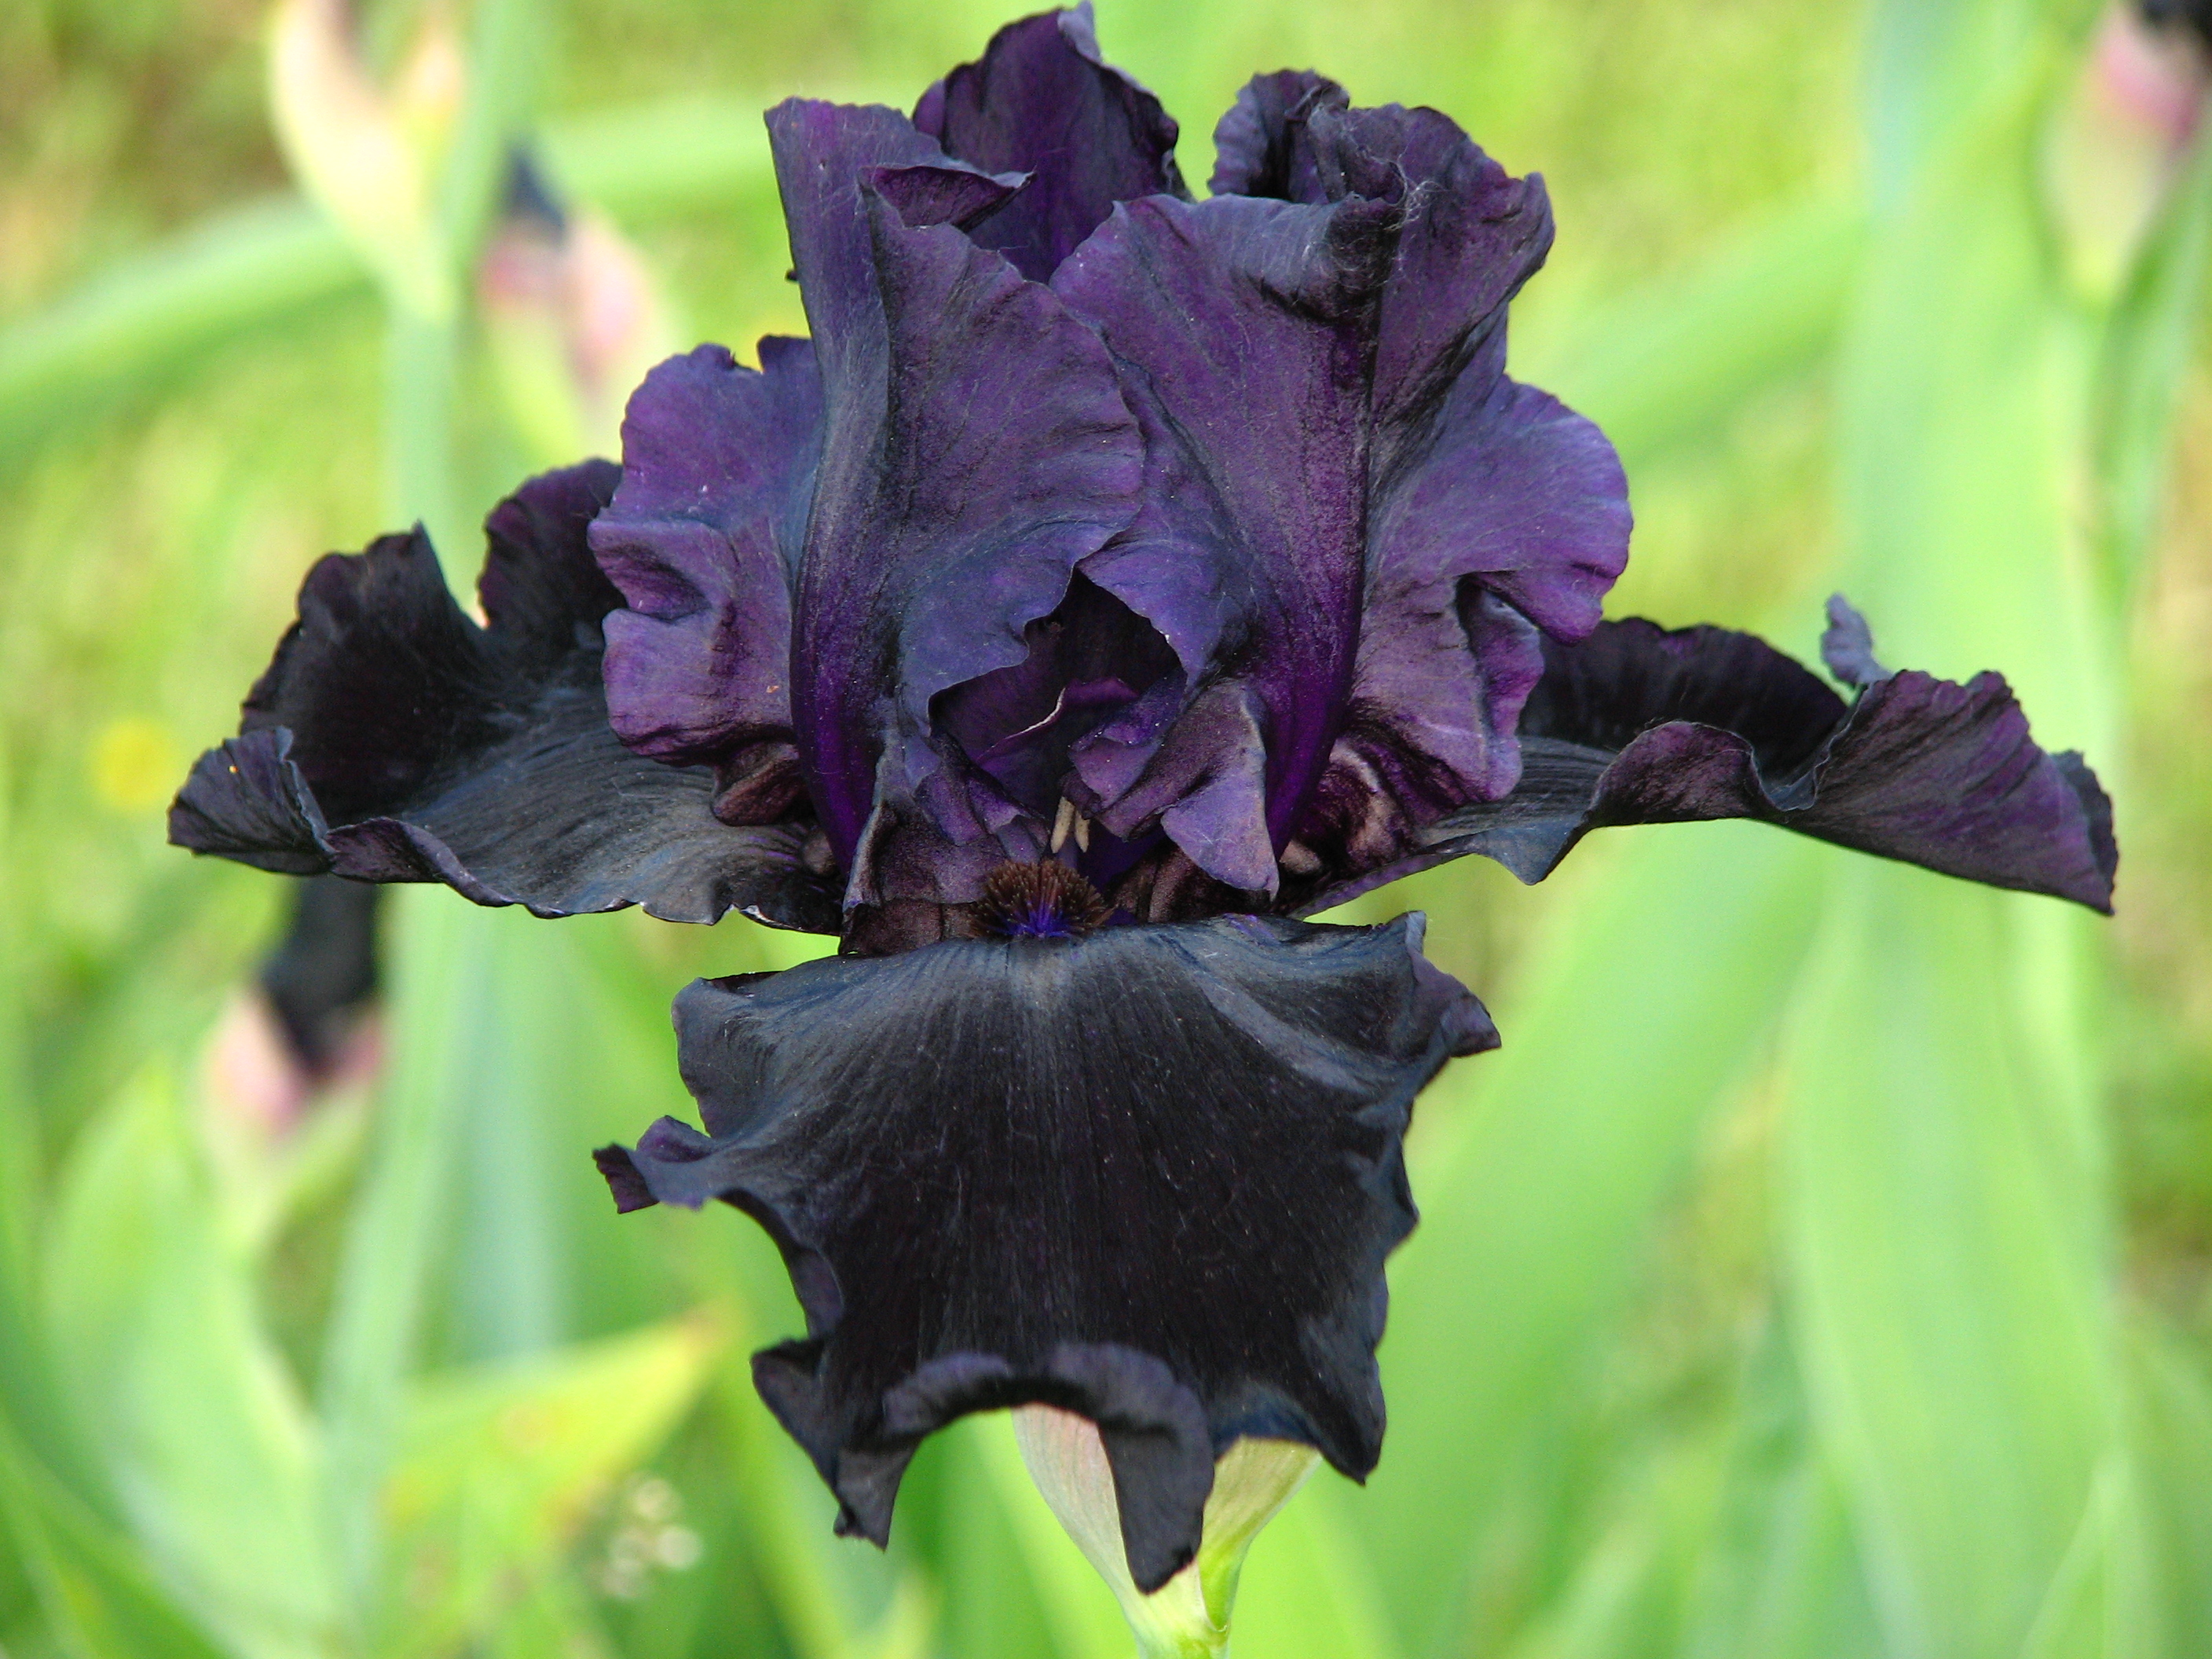 https://upload.wikimedia.org/wikipedia/commons/9/95/Iris_'Dark_Passion'_02.JPG